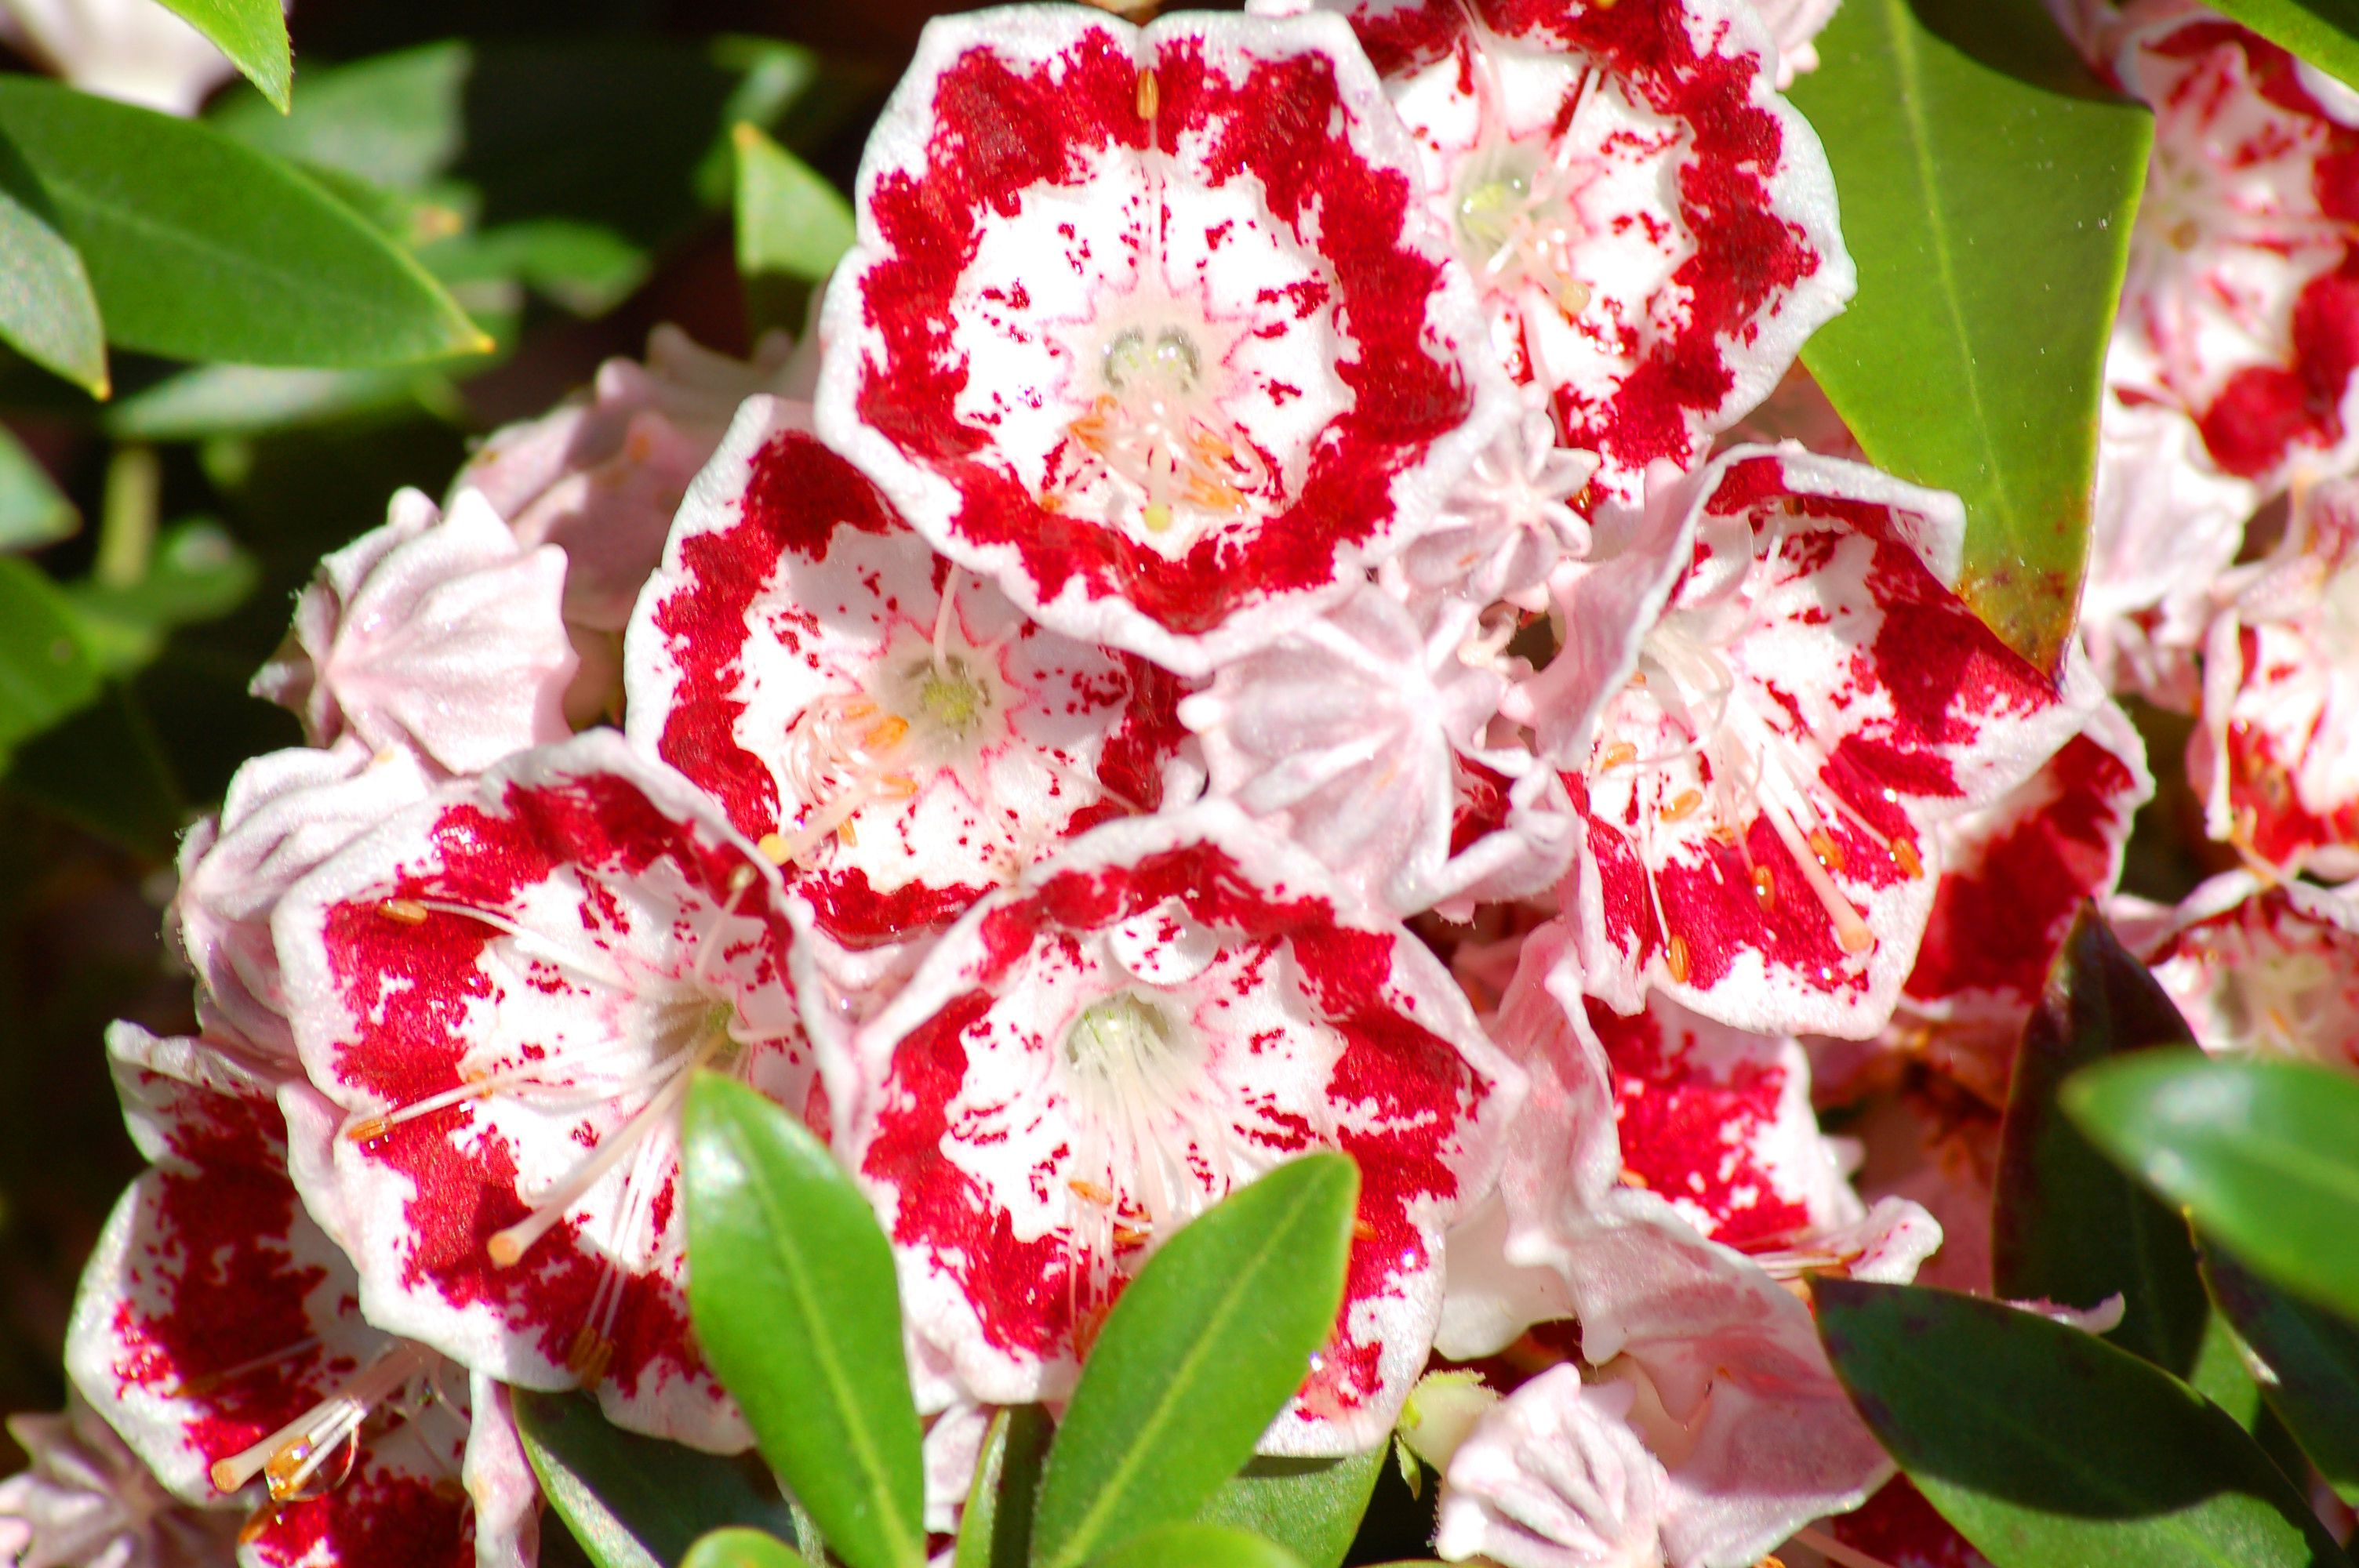 Minuet laurel has reddish-pink flowers.